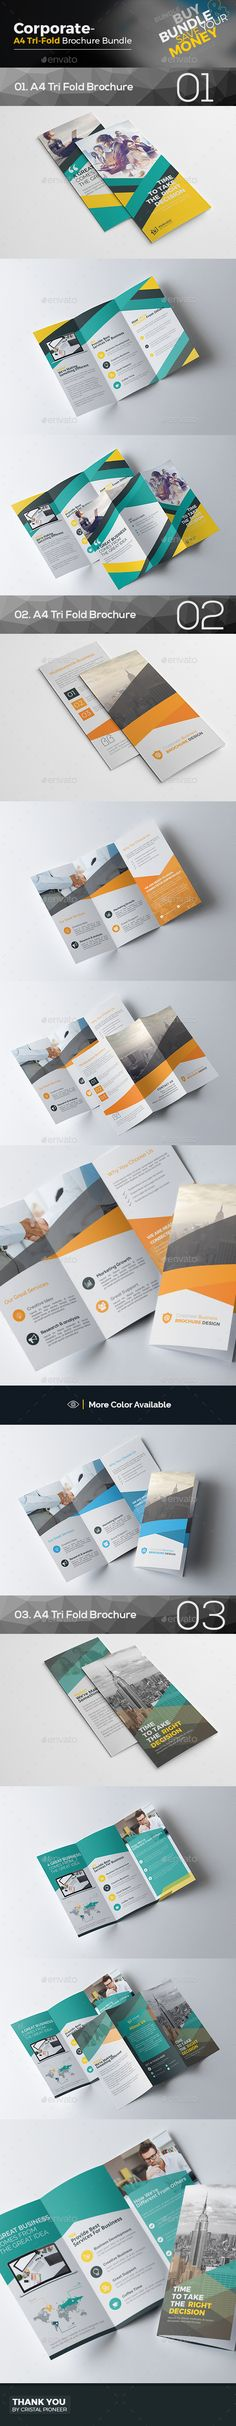 Tri Fold Brochure Design Bundle 3 In 1 Corporate Brochure Template